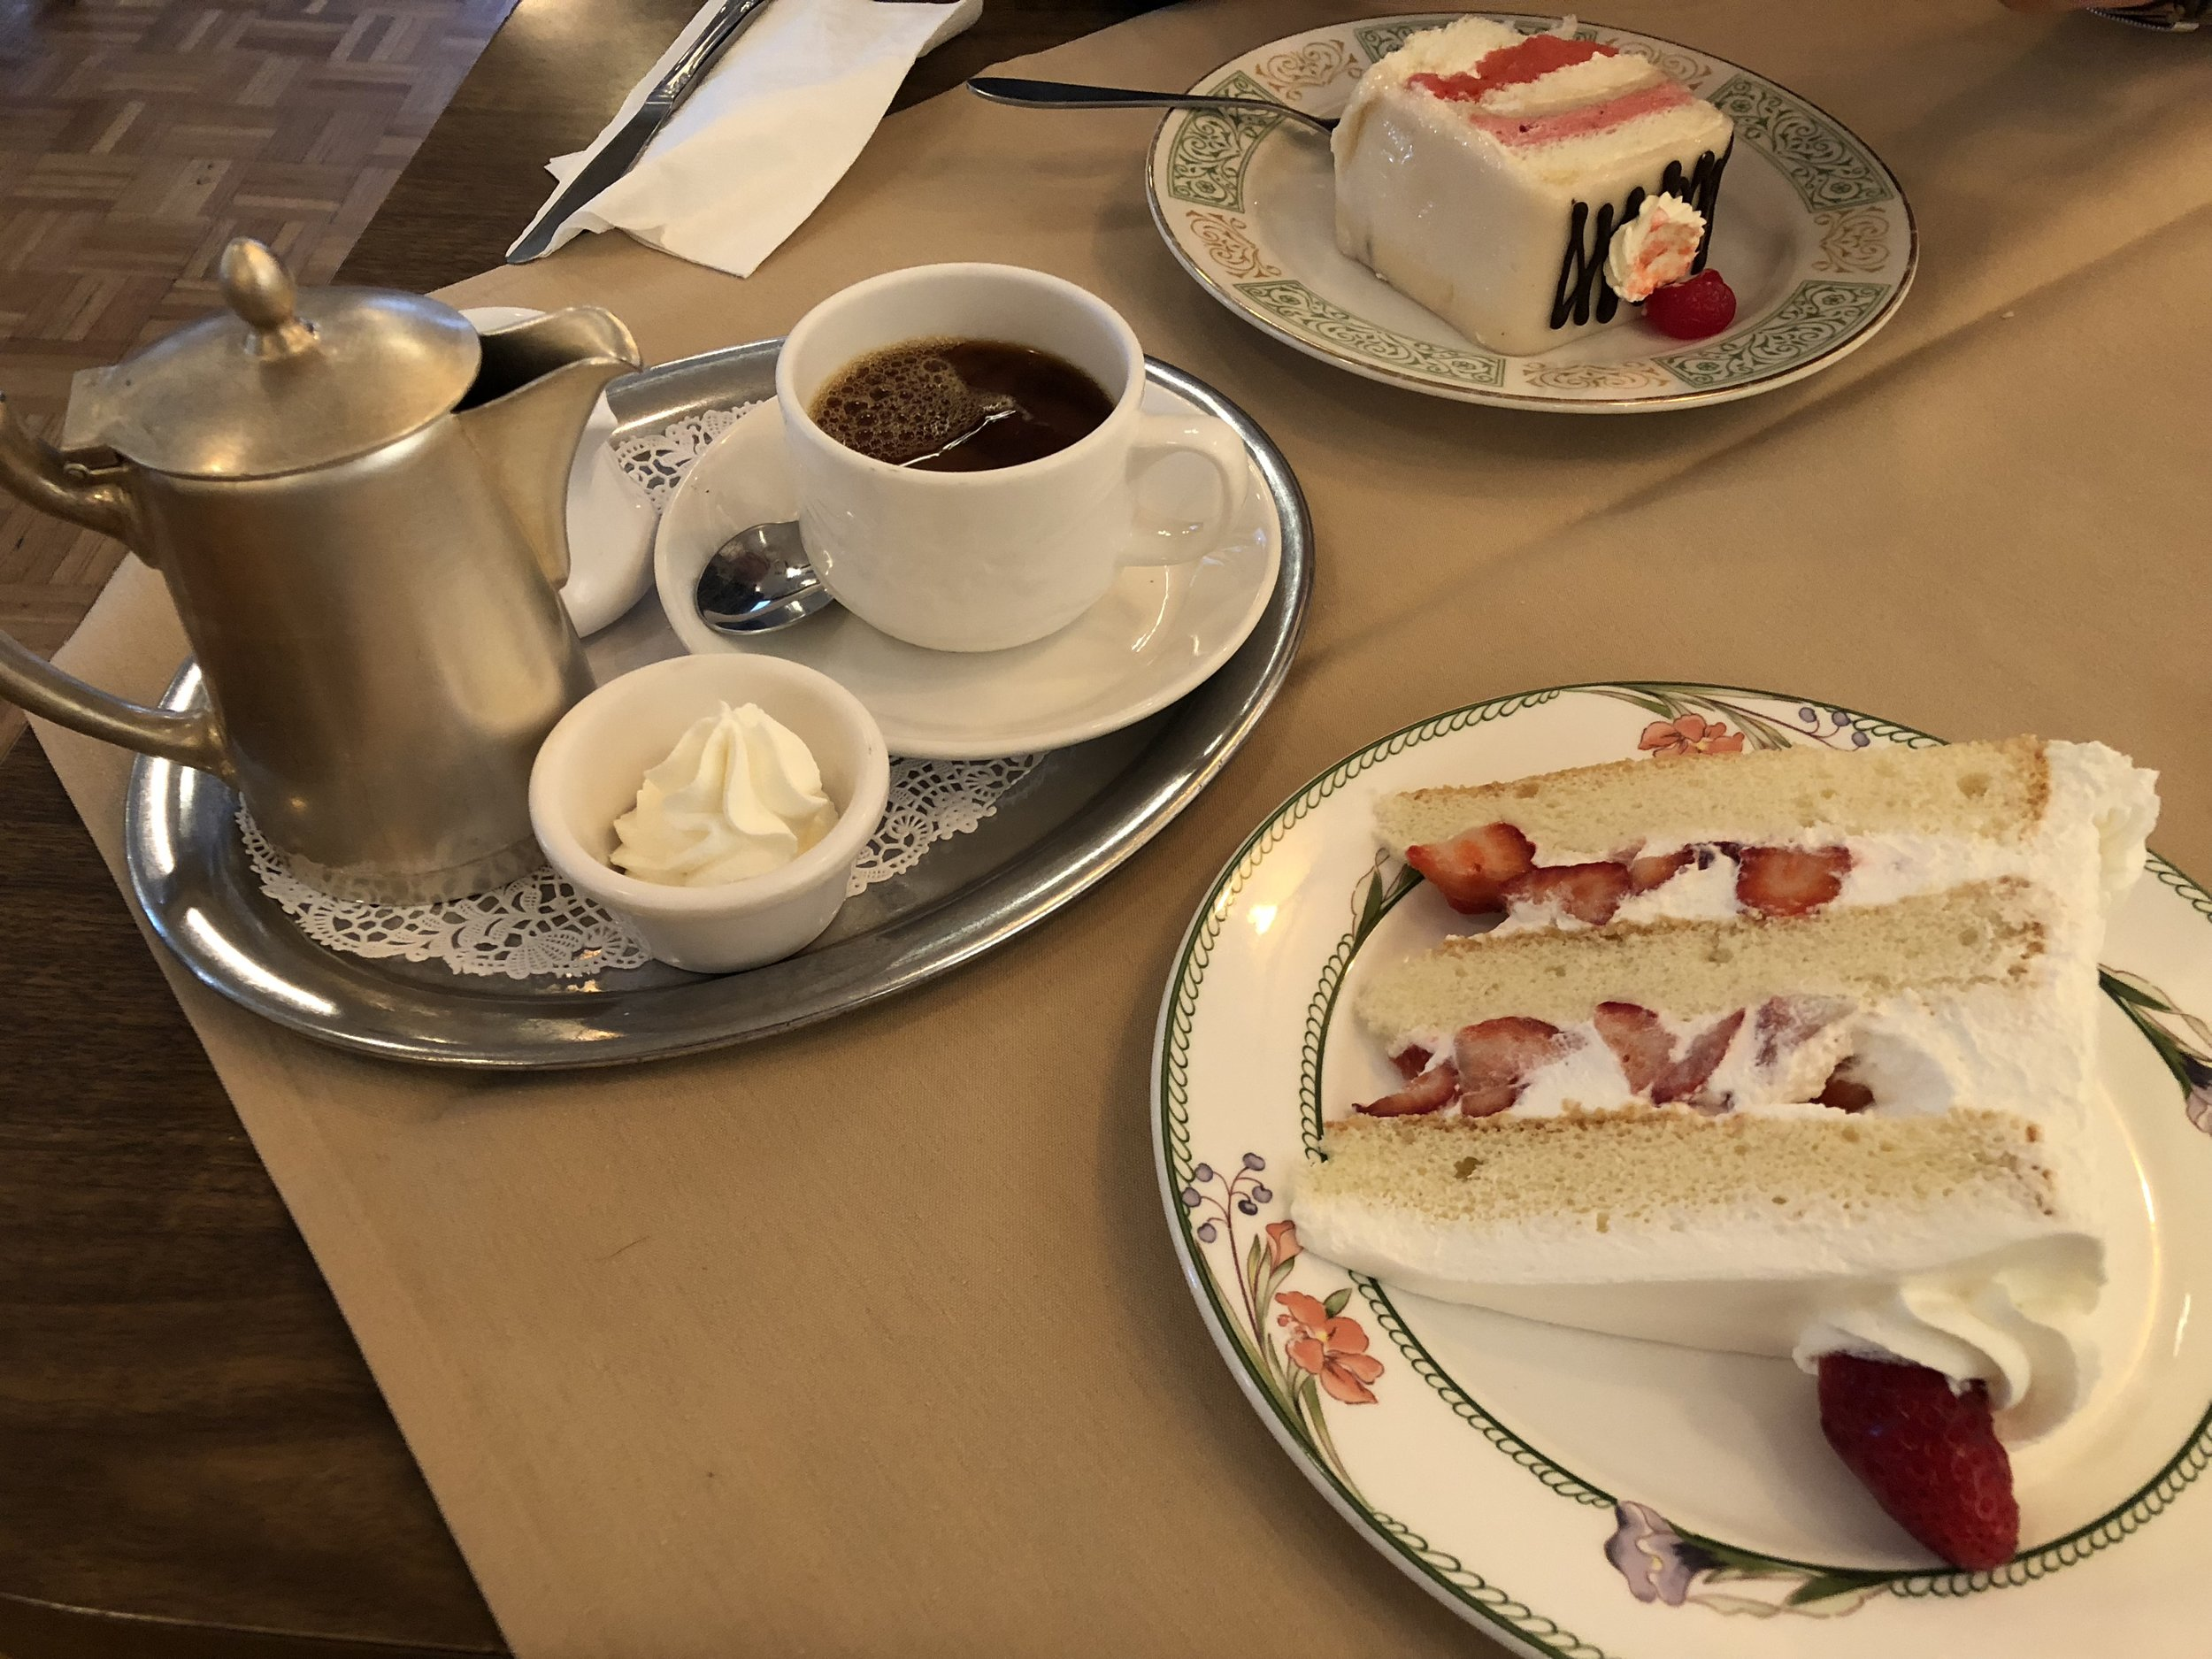 Strawberry Whipped Cream Torte and Coffee at Lutz - photo by LaRonika Thomas